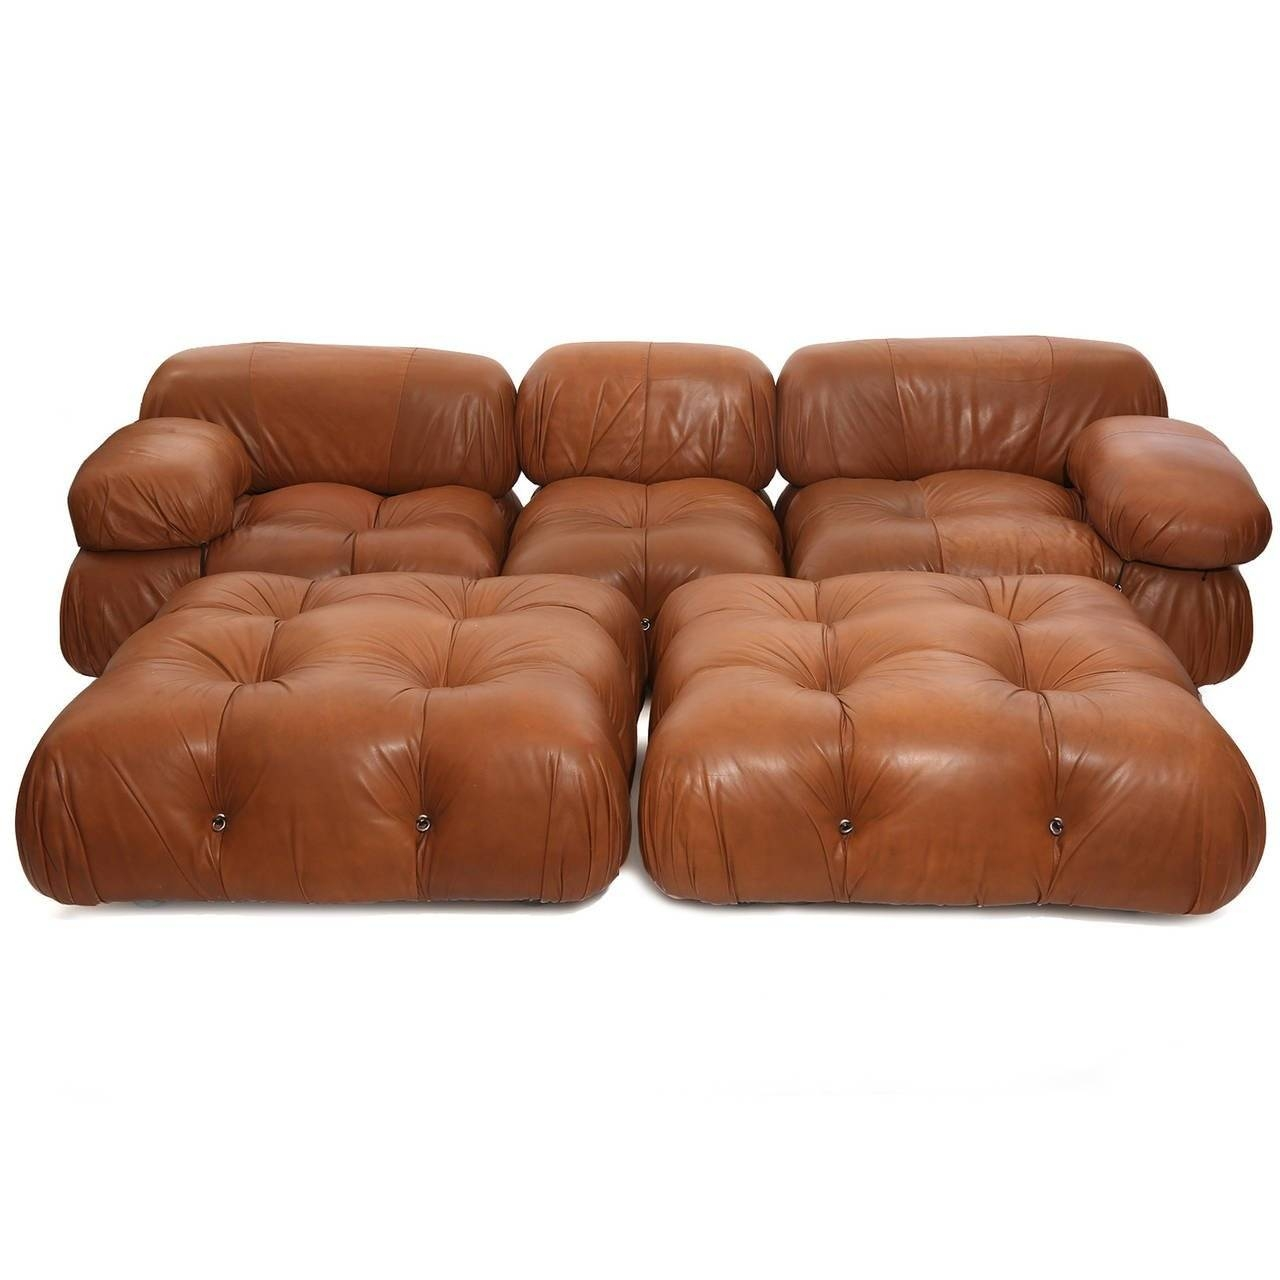 Rare Mario Bellini Camaleonda Sofa And Ottomans At 1stdibs Intended For Bellini Sofas (View 6 of 15)